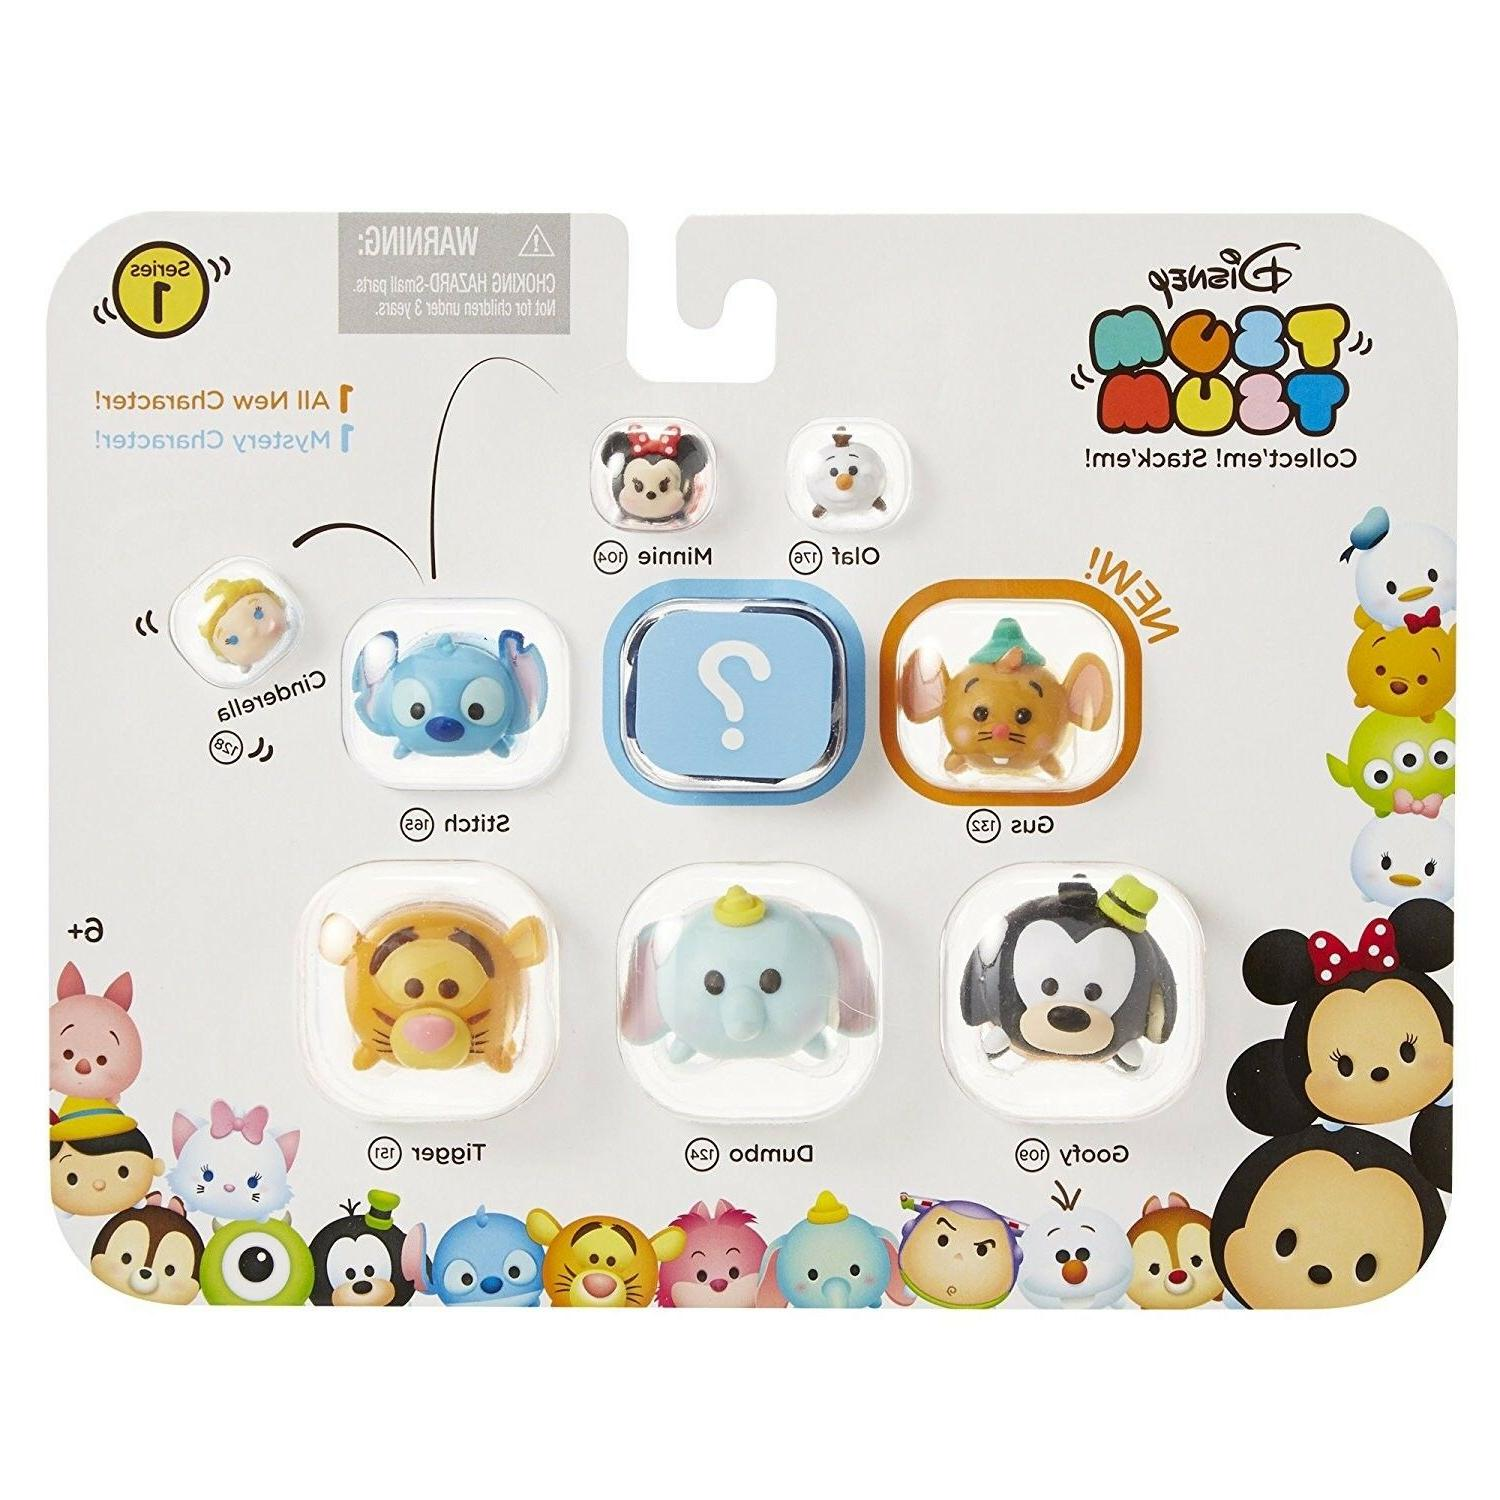 Disney Tsum Tsum Series 1 Style #2 Figures 9 Pack Toys Colle